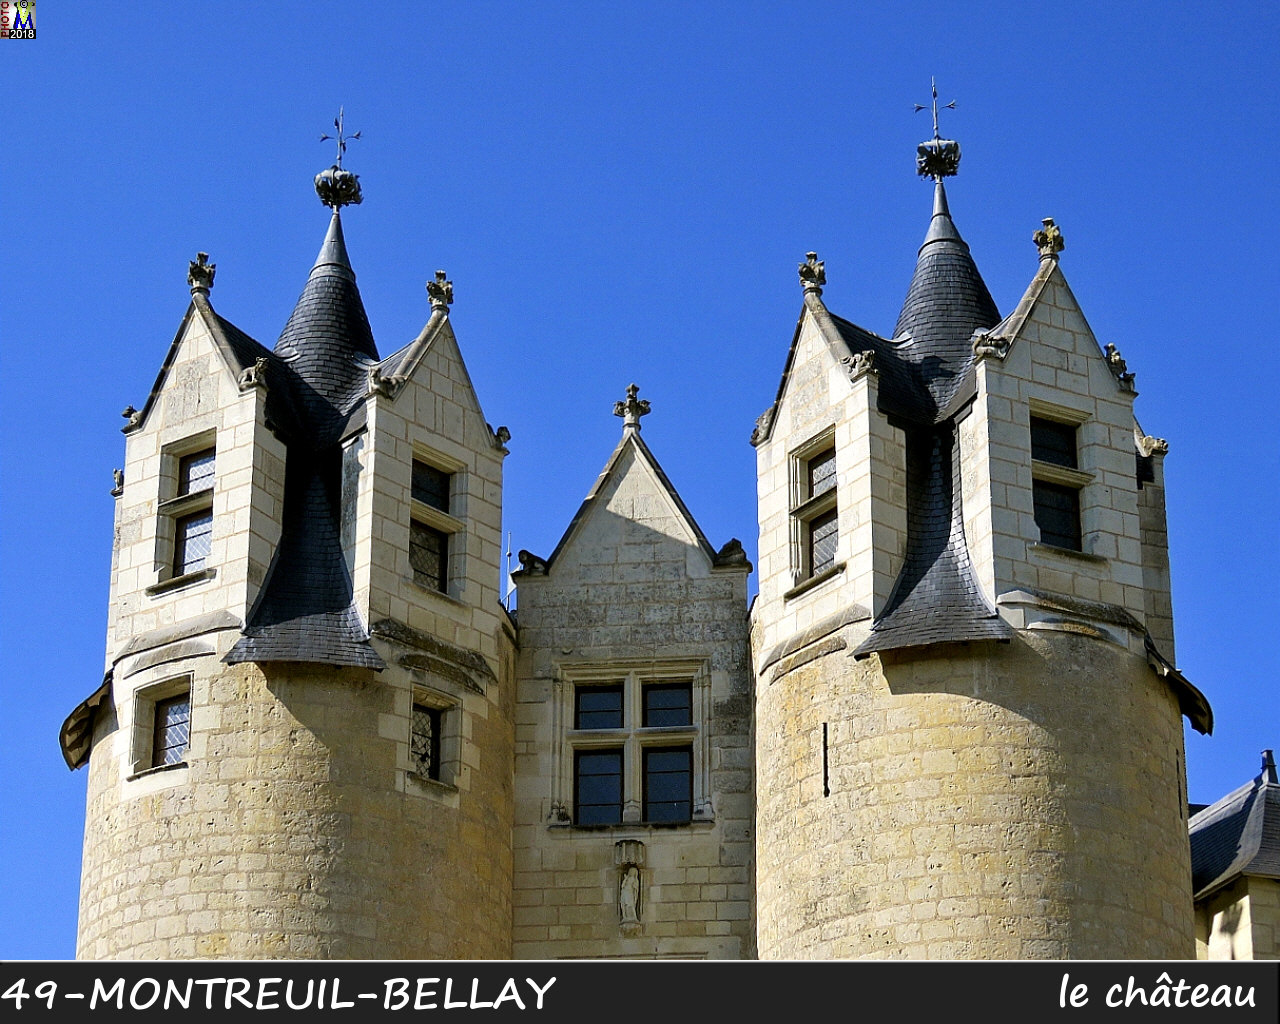 49MONTREUIL-BELLAY_chateau_1022.jpg